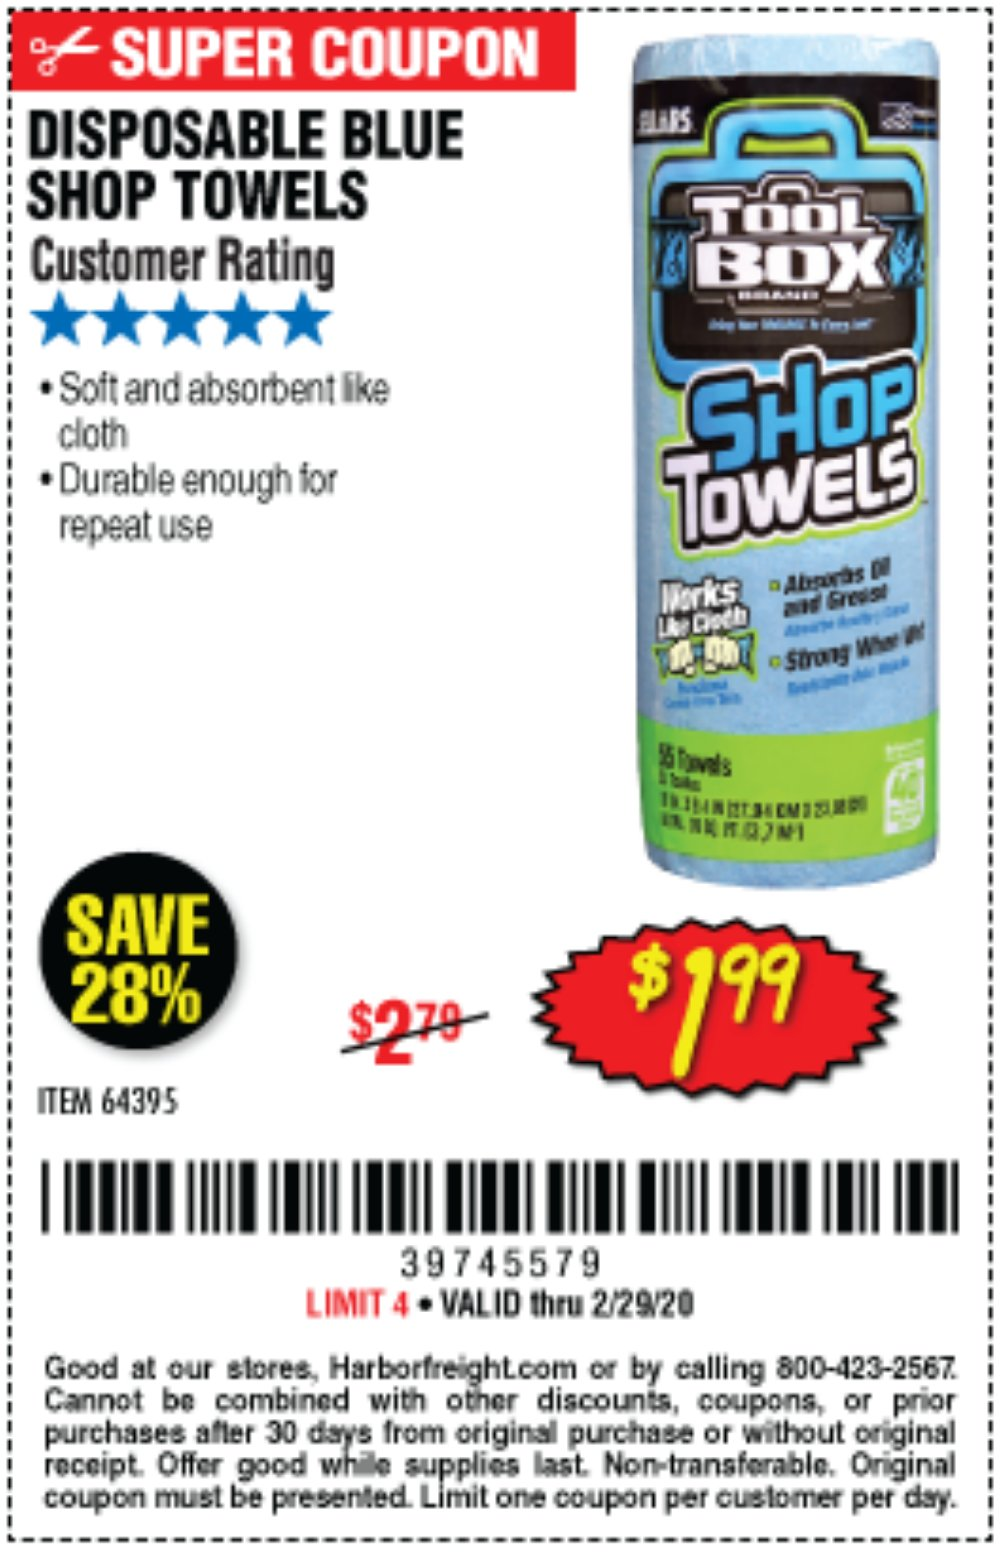 Harbor Freight Coupon, HF Coupons - Disposable Blue Shop Towels